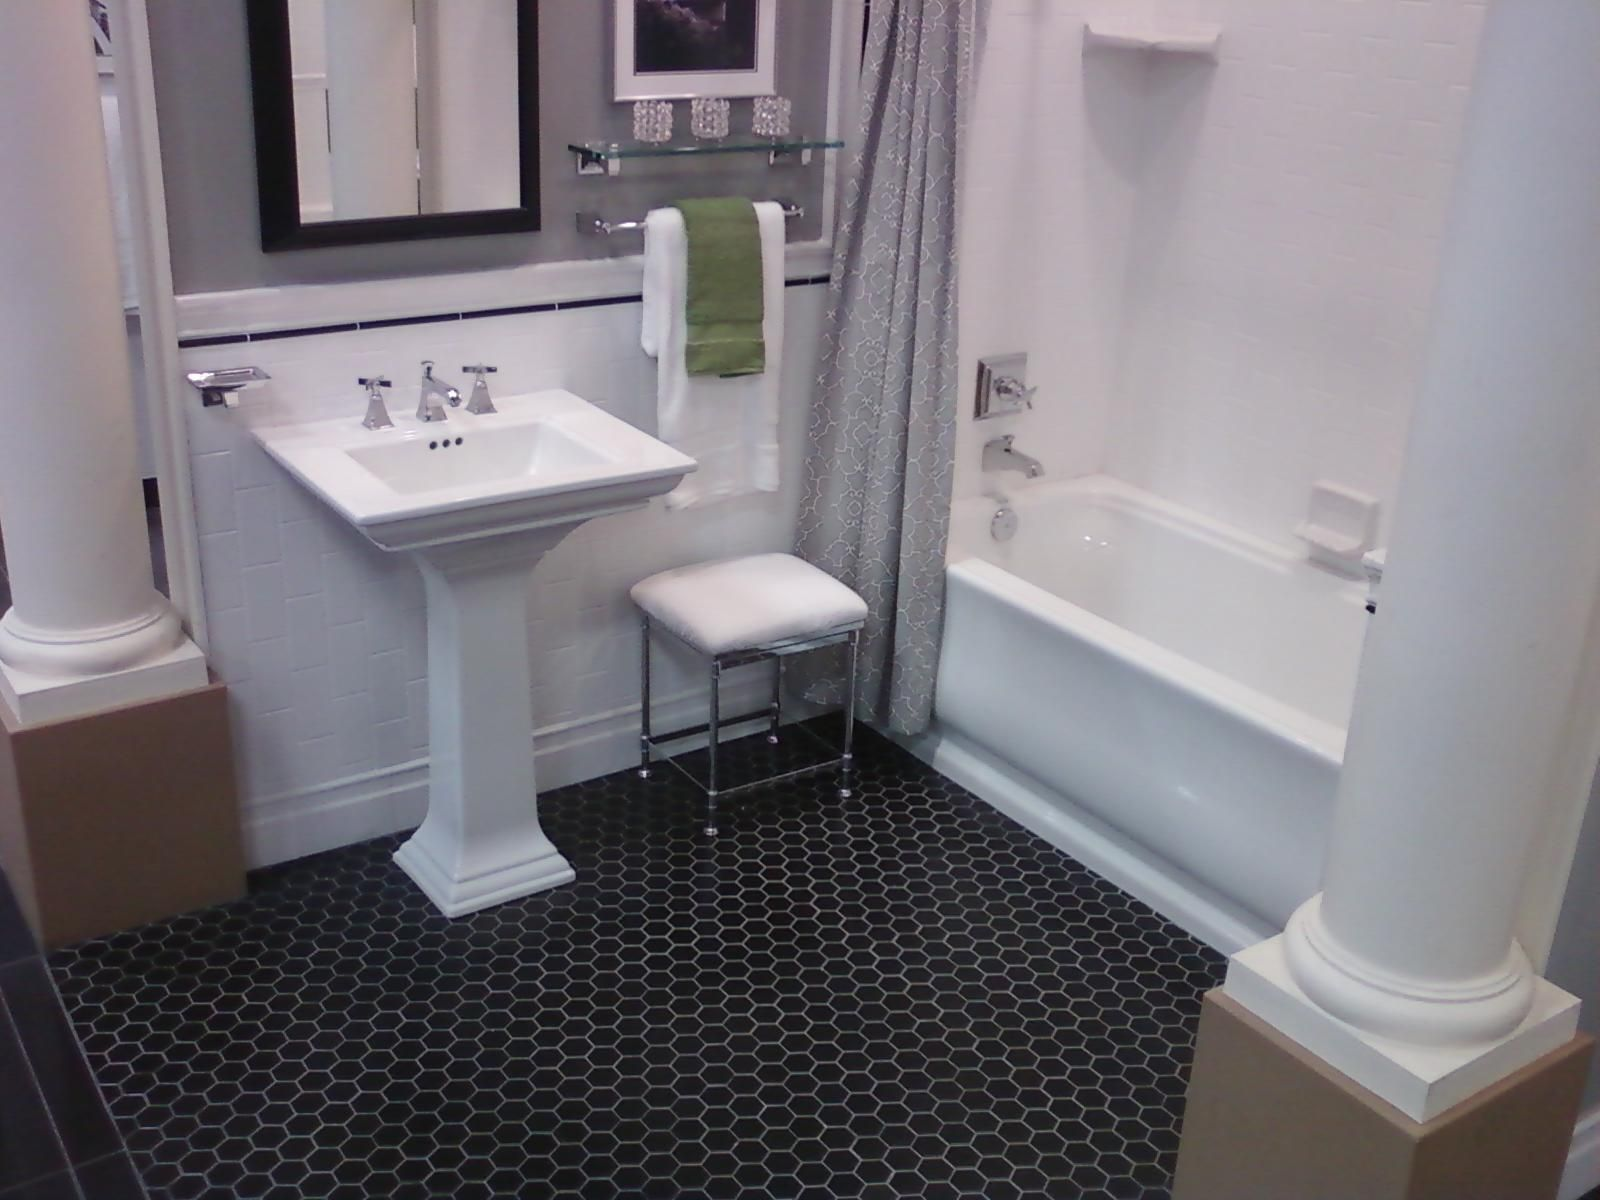 Black Hexagonal Tile Bathroom Floor 1 Bed Studio